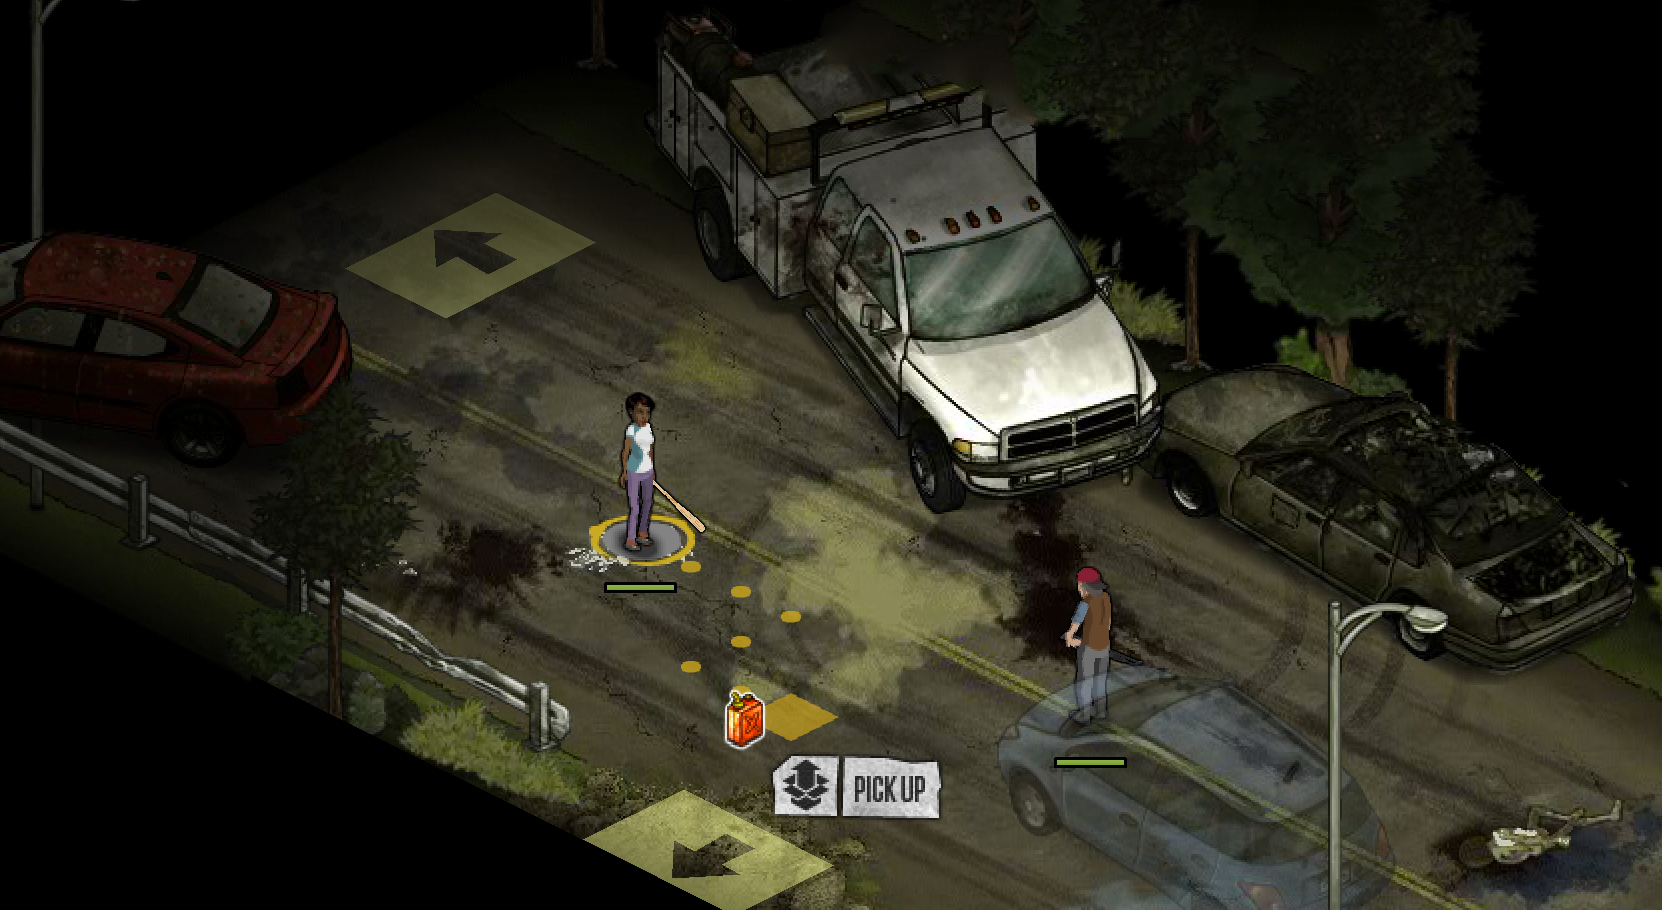 walkingDead09.png